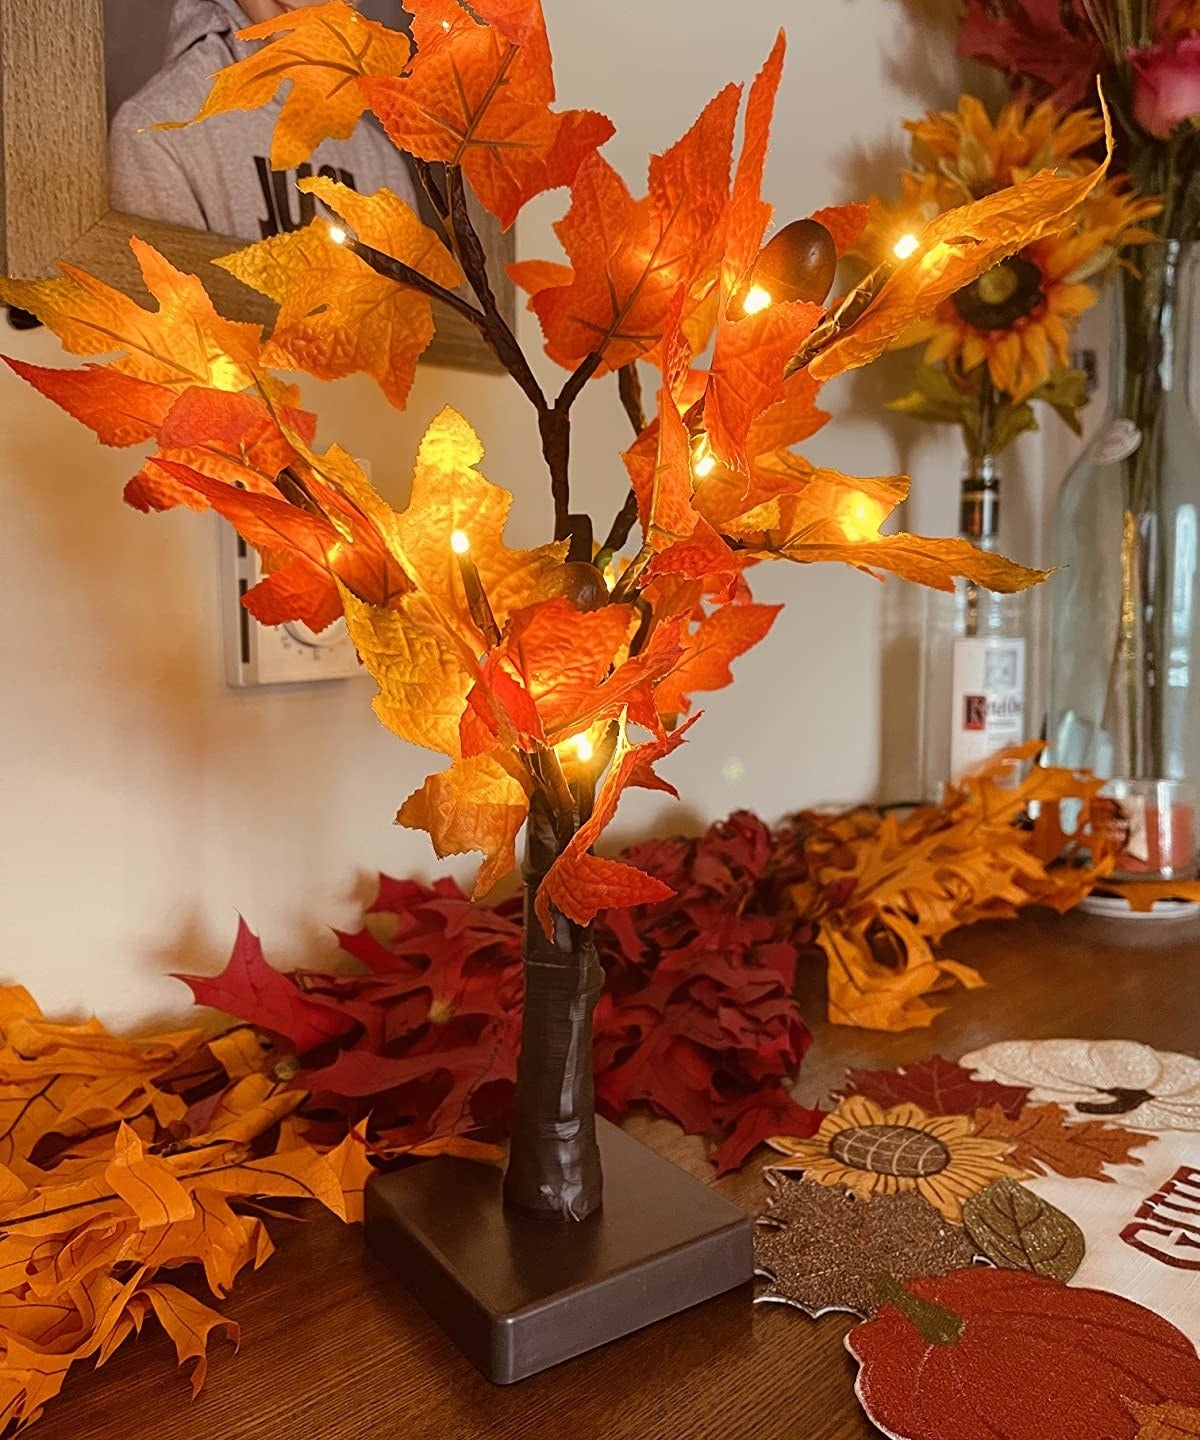 A fake light-up tree with orange and red flowers on a brown tabletop next to more fake leaves